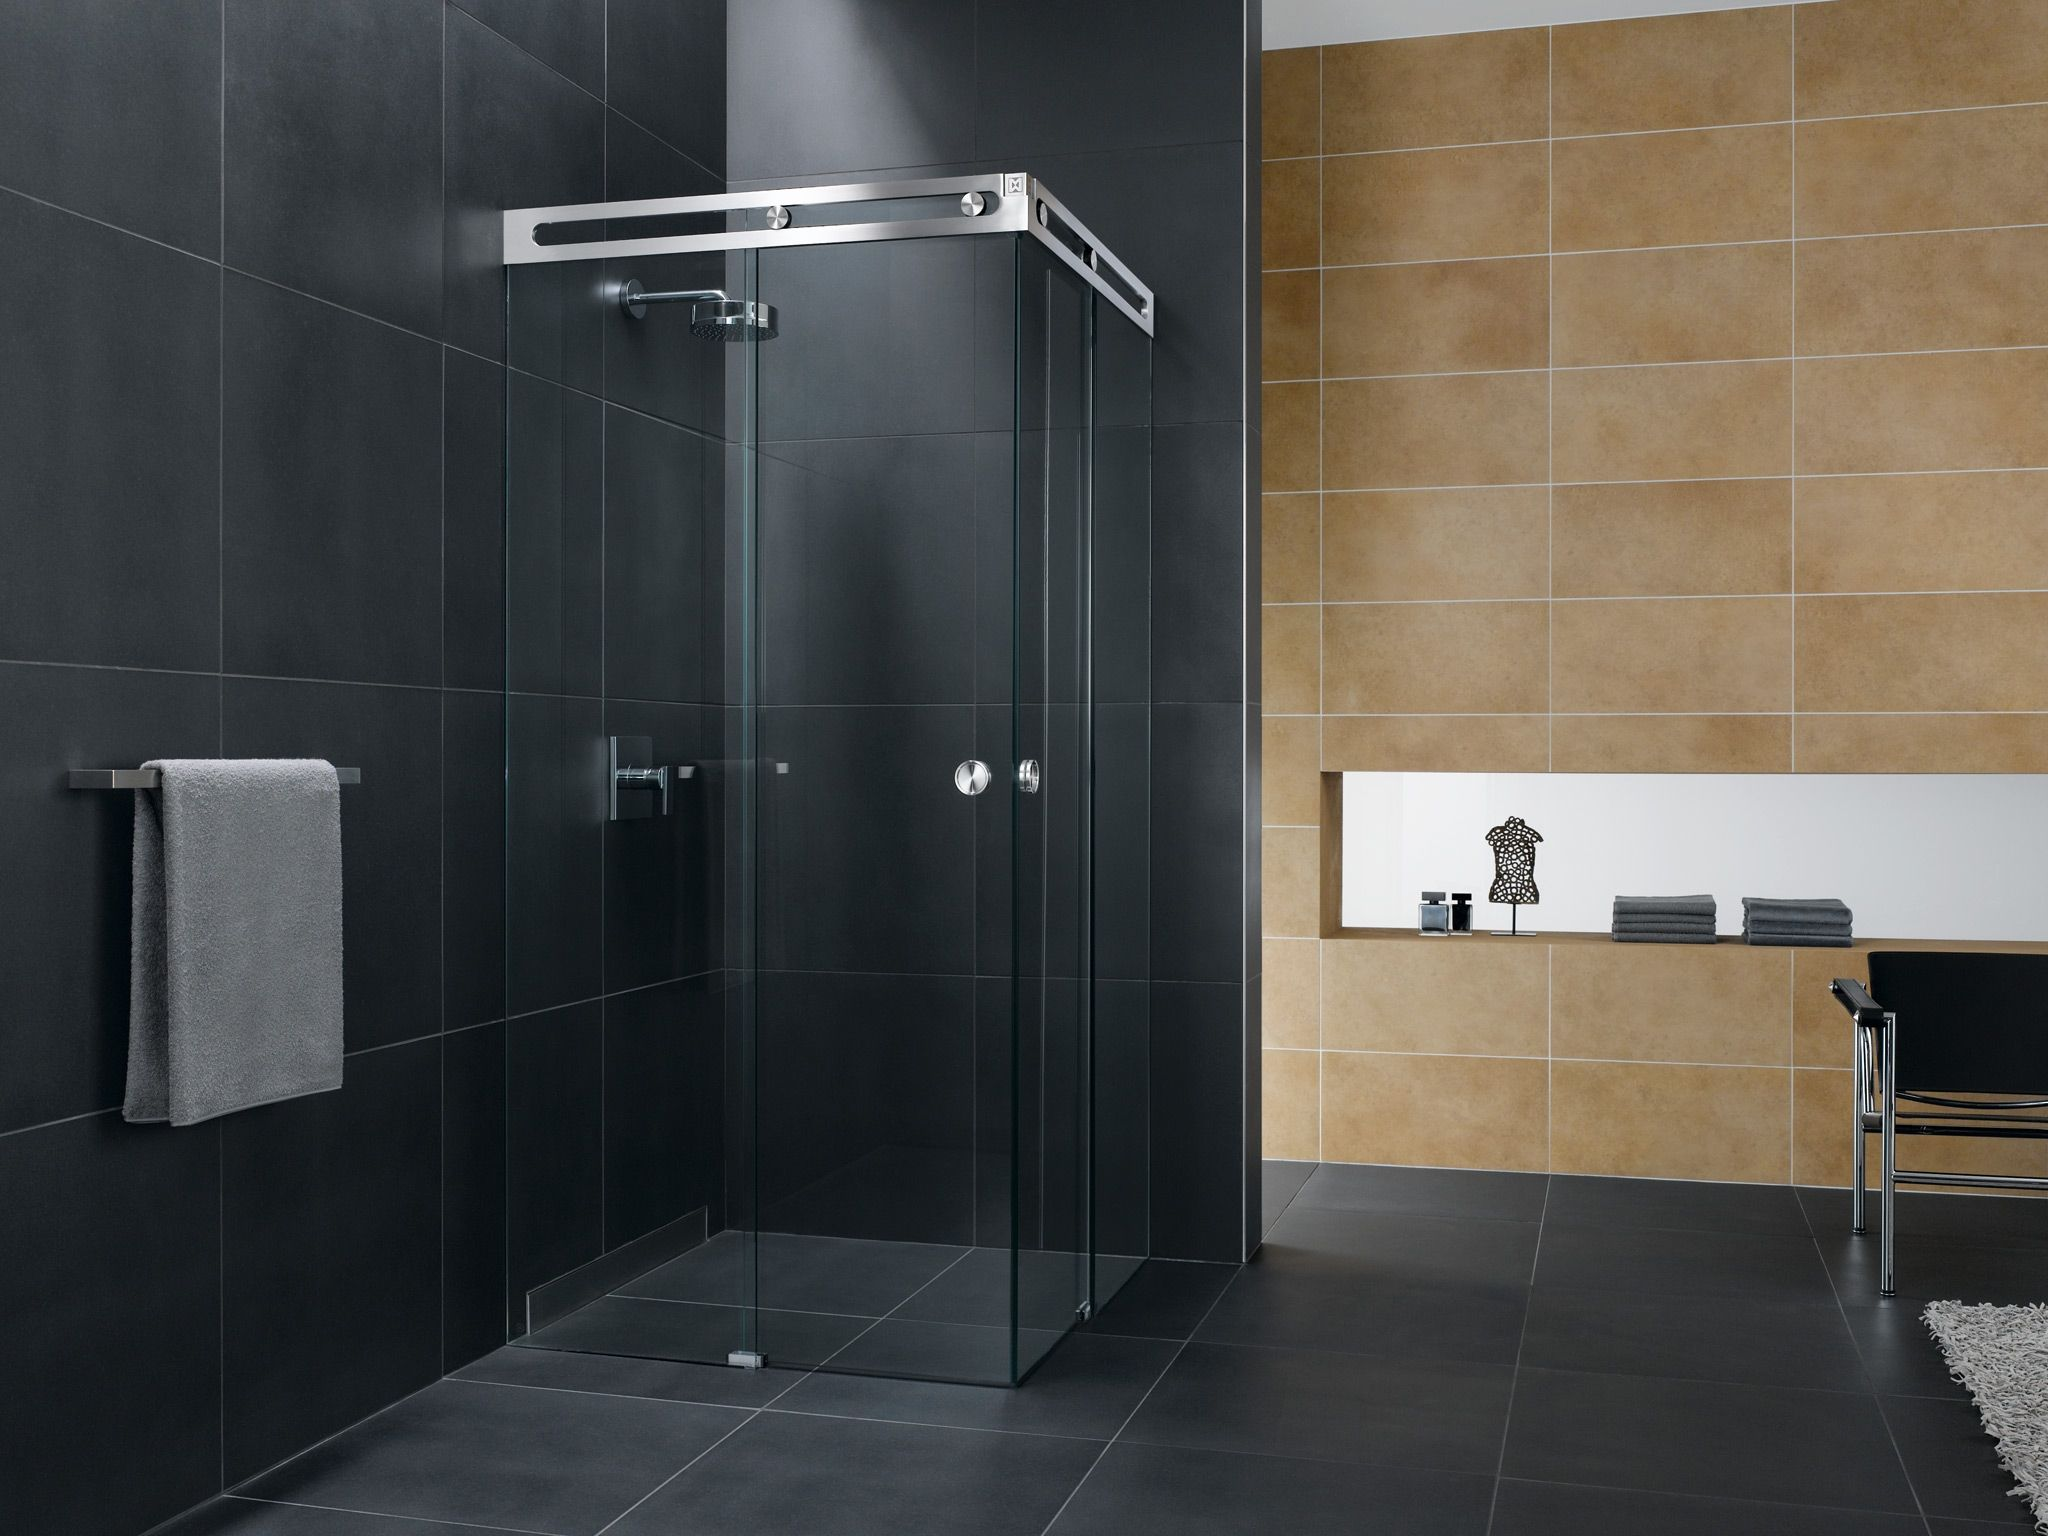 Crl Frameless Shower Door Hardware Template Guide